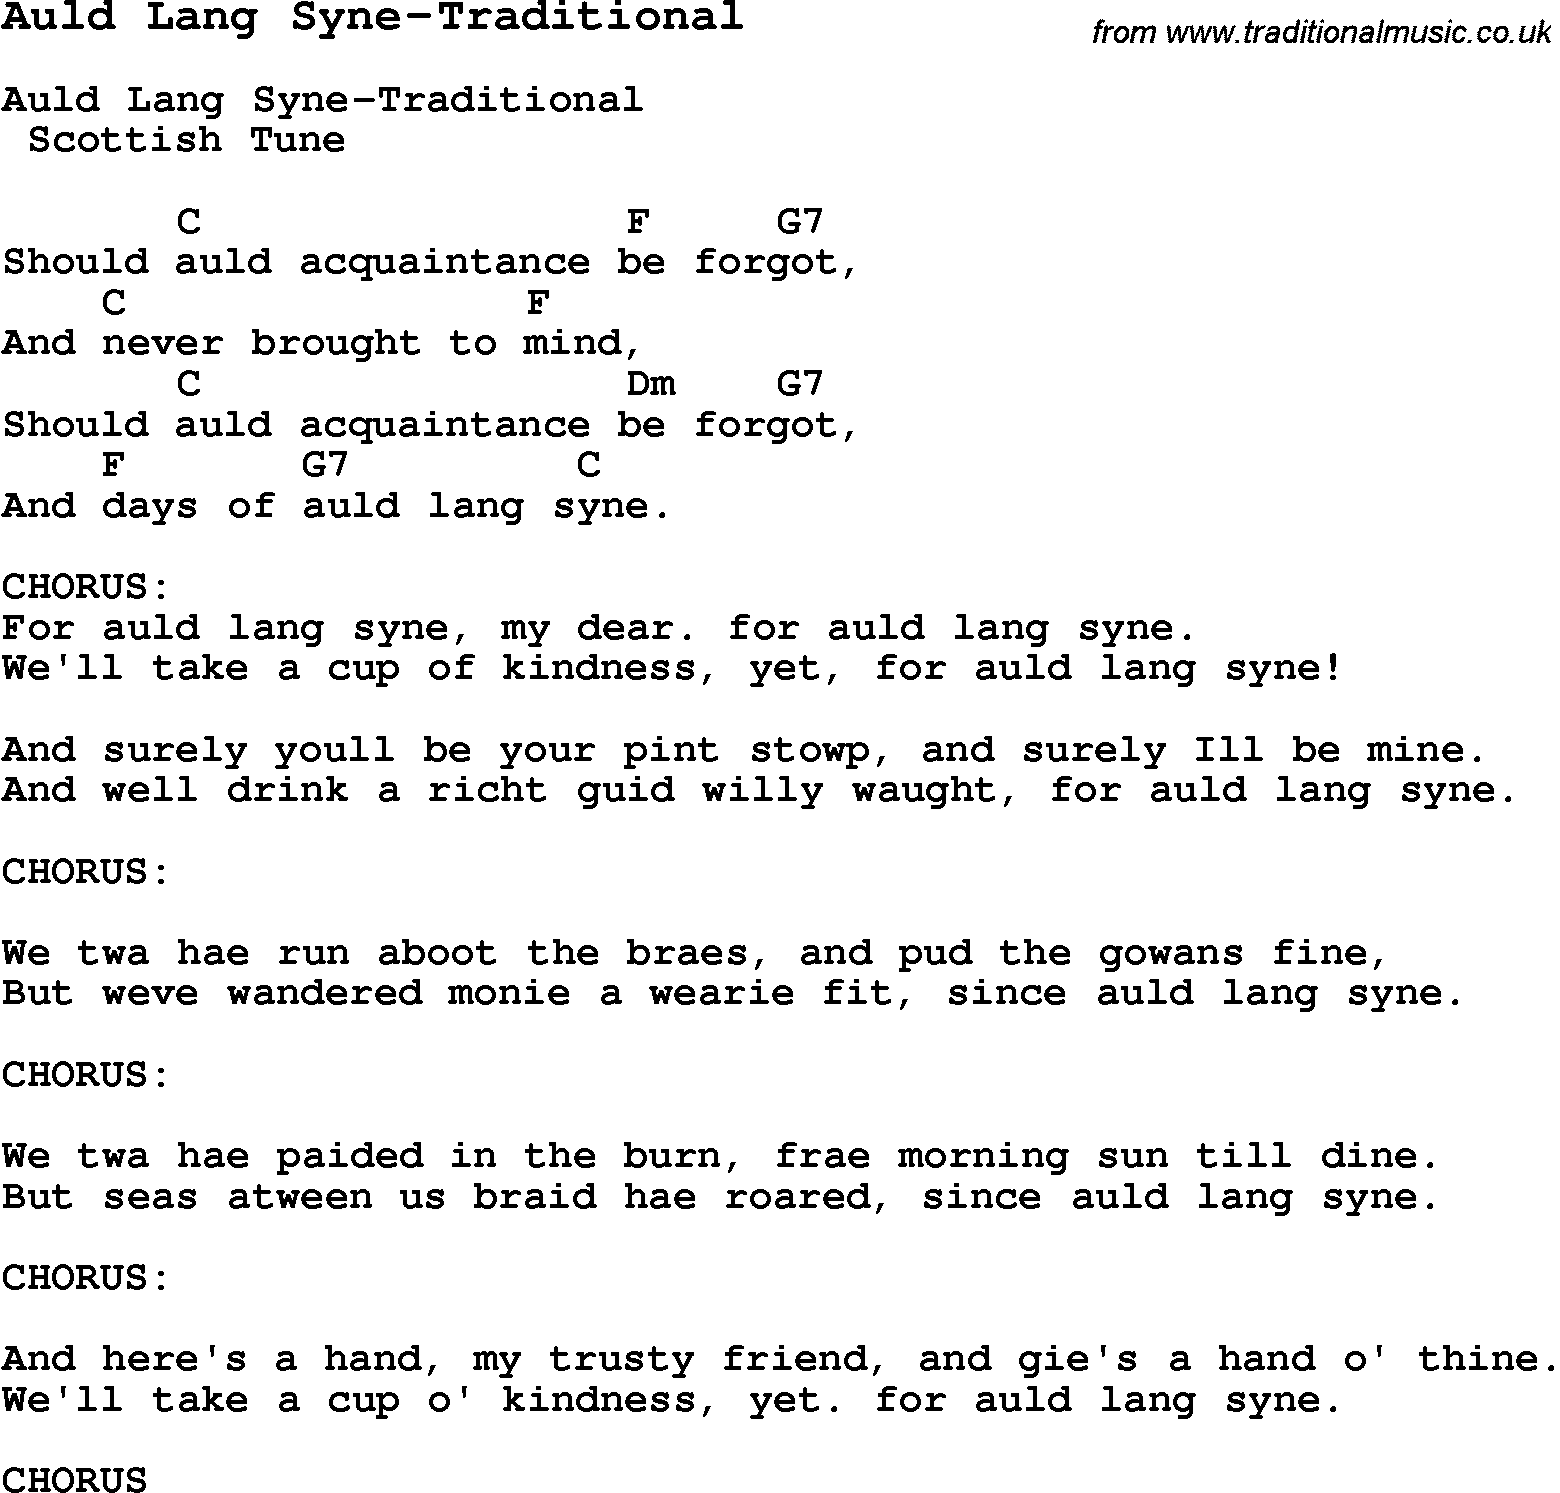 Summer Camp Song, Auld Lang Syne-Traditional, with lyrics and chords for Ukulele, Guitar, Banjo etc.